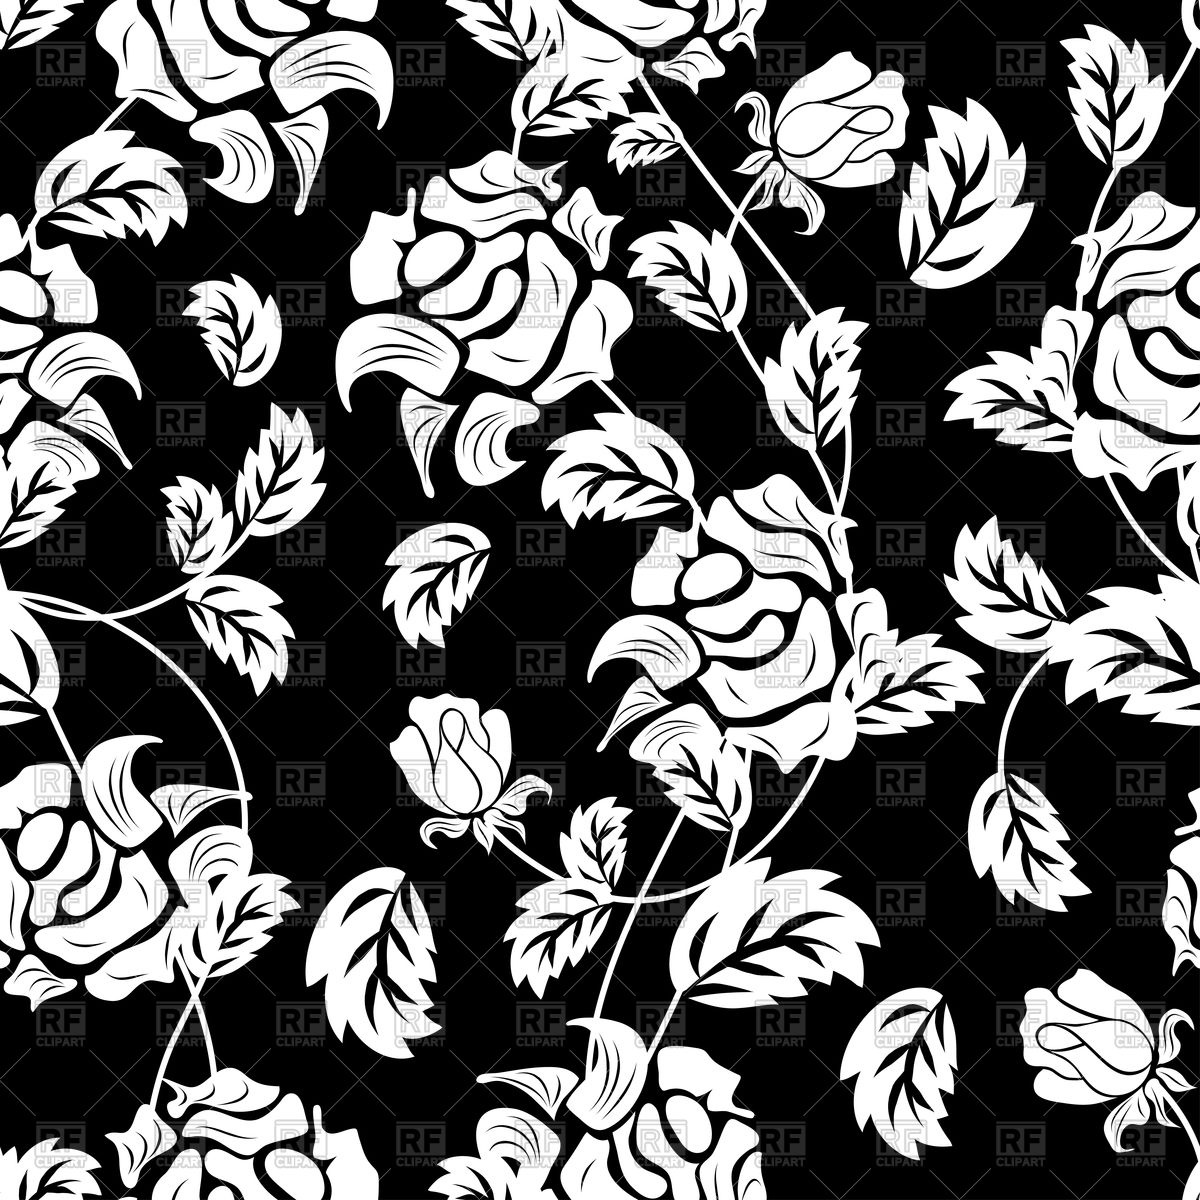 Floral Pattern Vector At Getdrawings Free Download